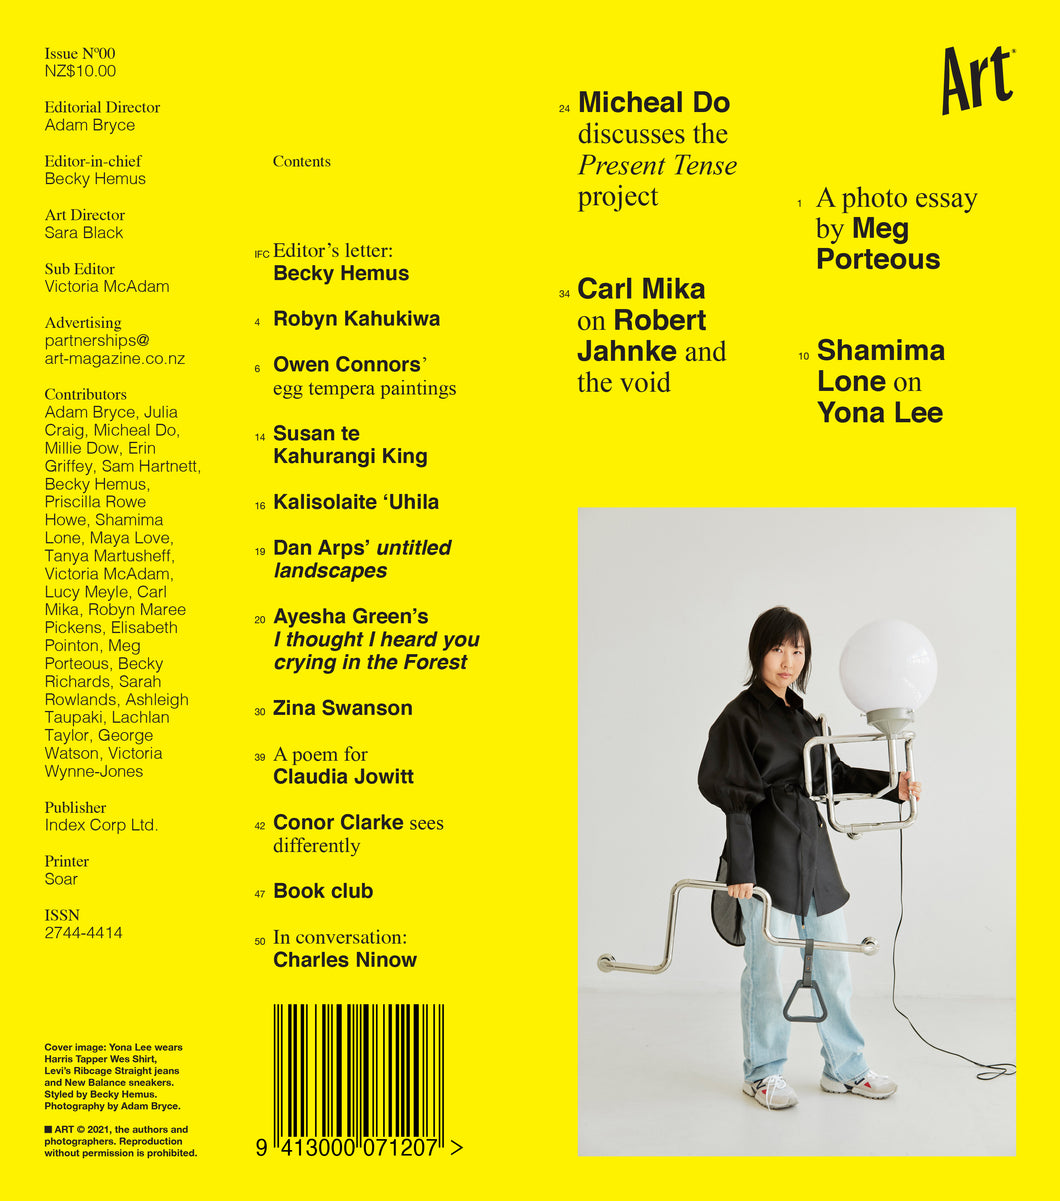 ART — Annual Subscription (4 Issues)